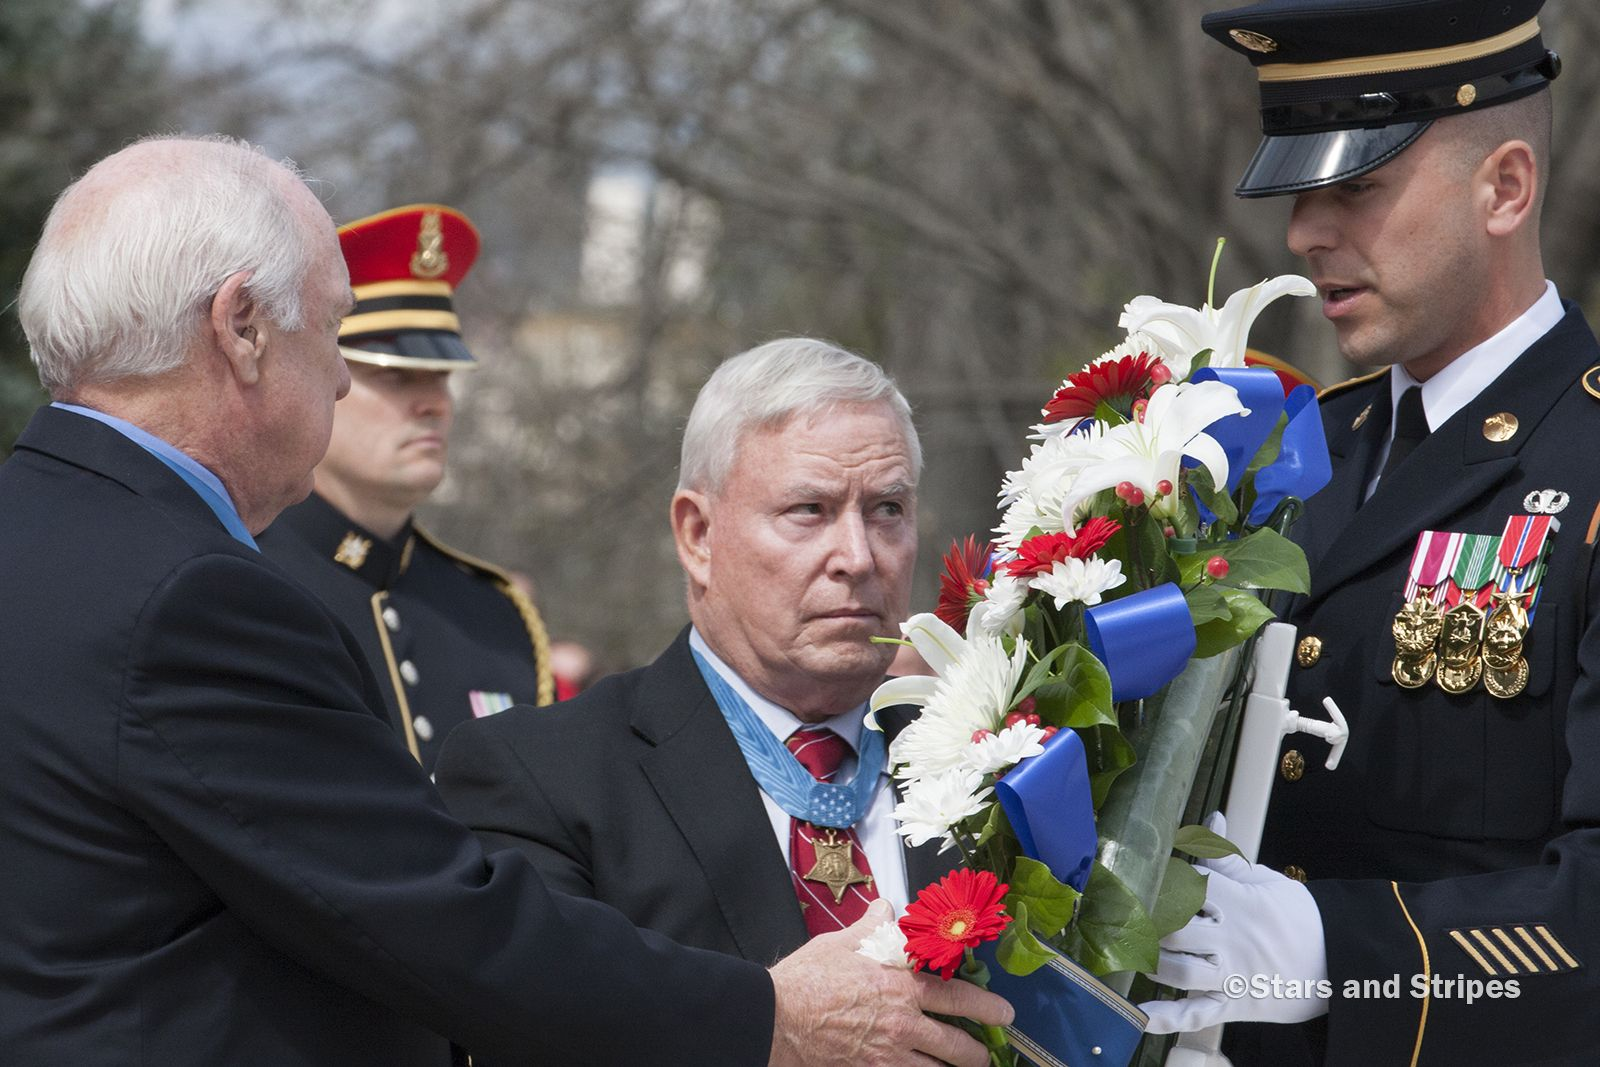 GALLERY Medal of honor recipients, Unknown soldier, Hero